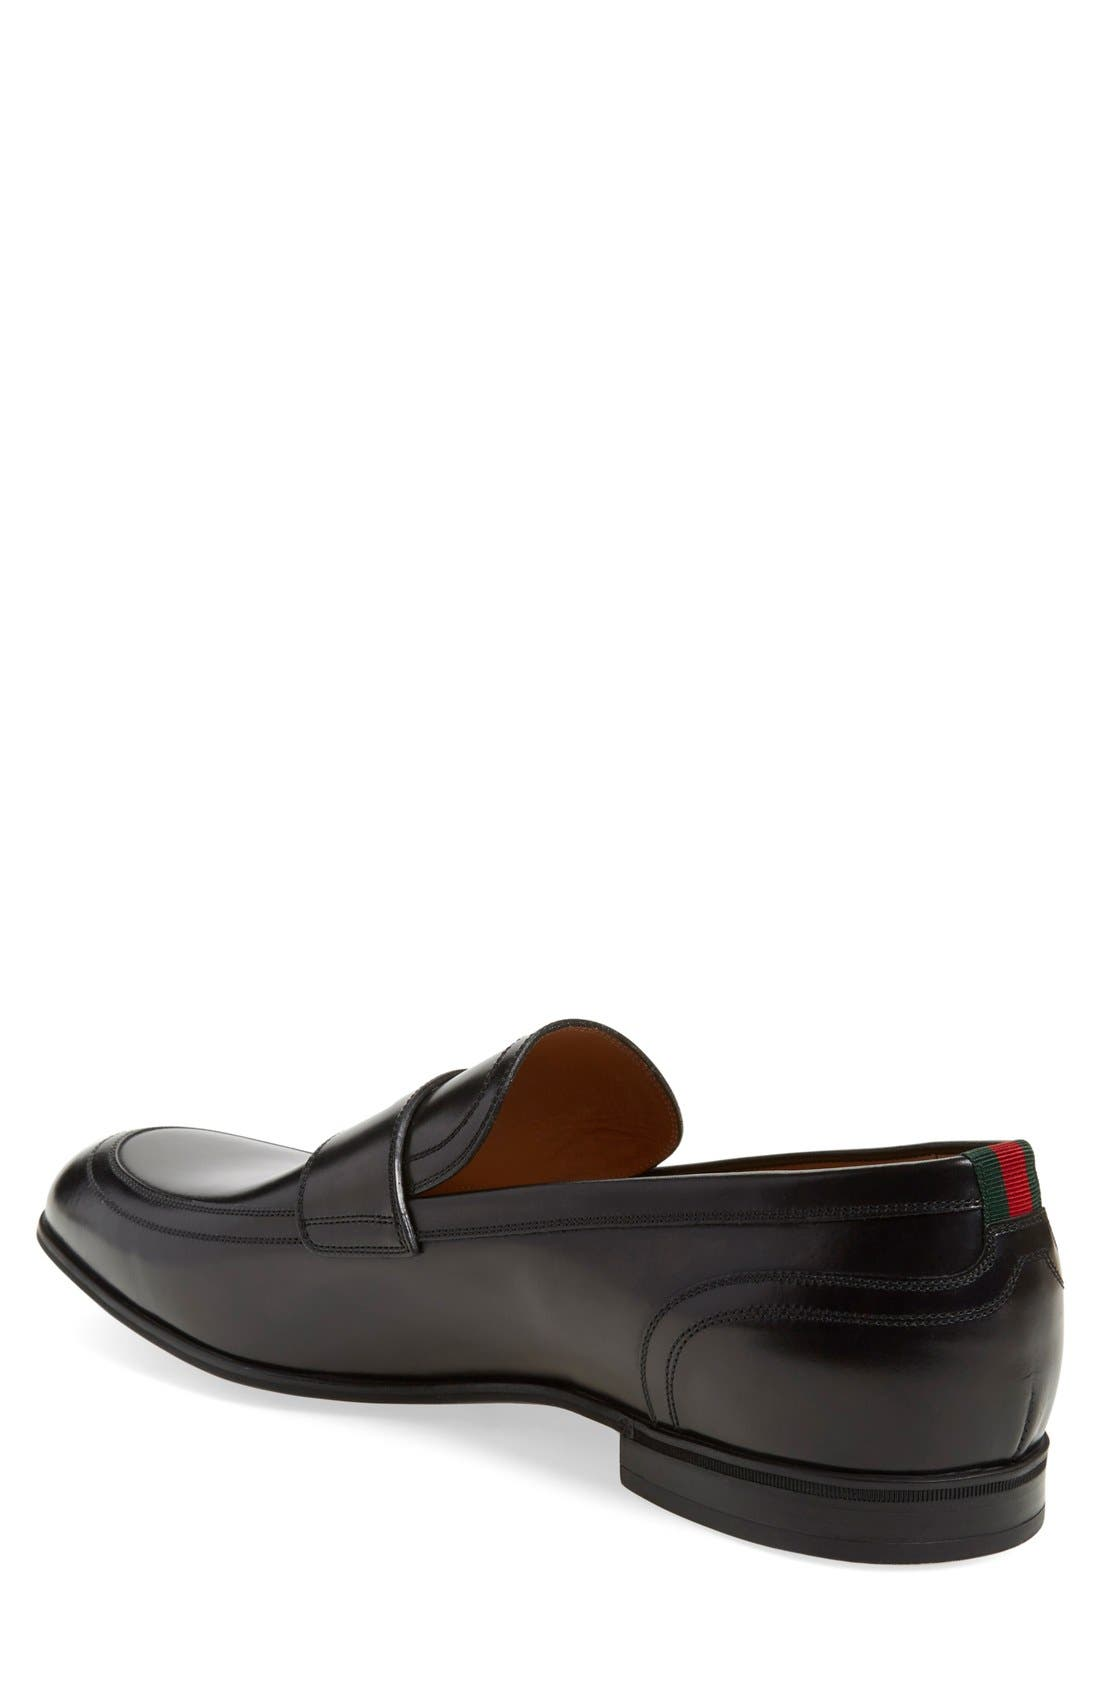 Alternate Image 2  - Gucci Ravello Penny Loafer (Men)